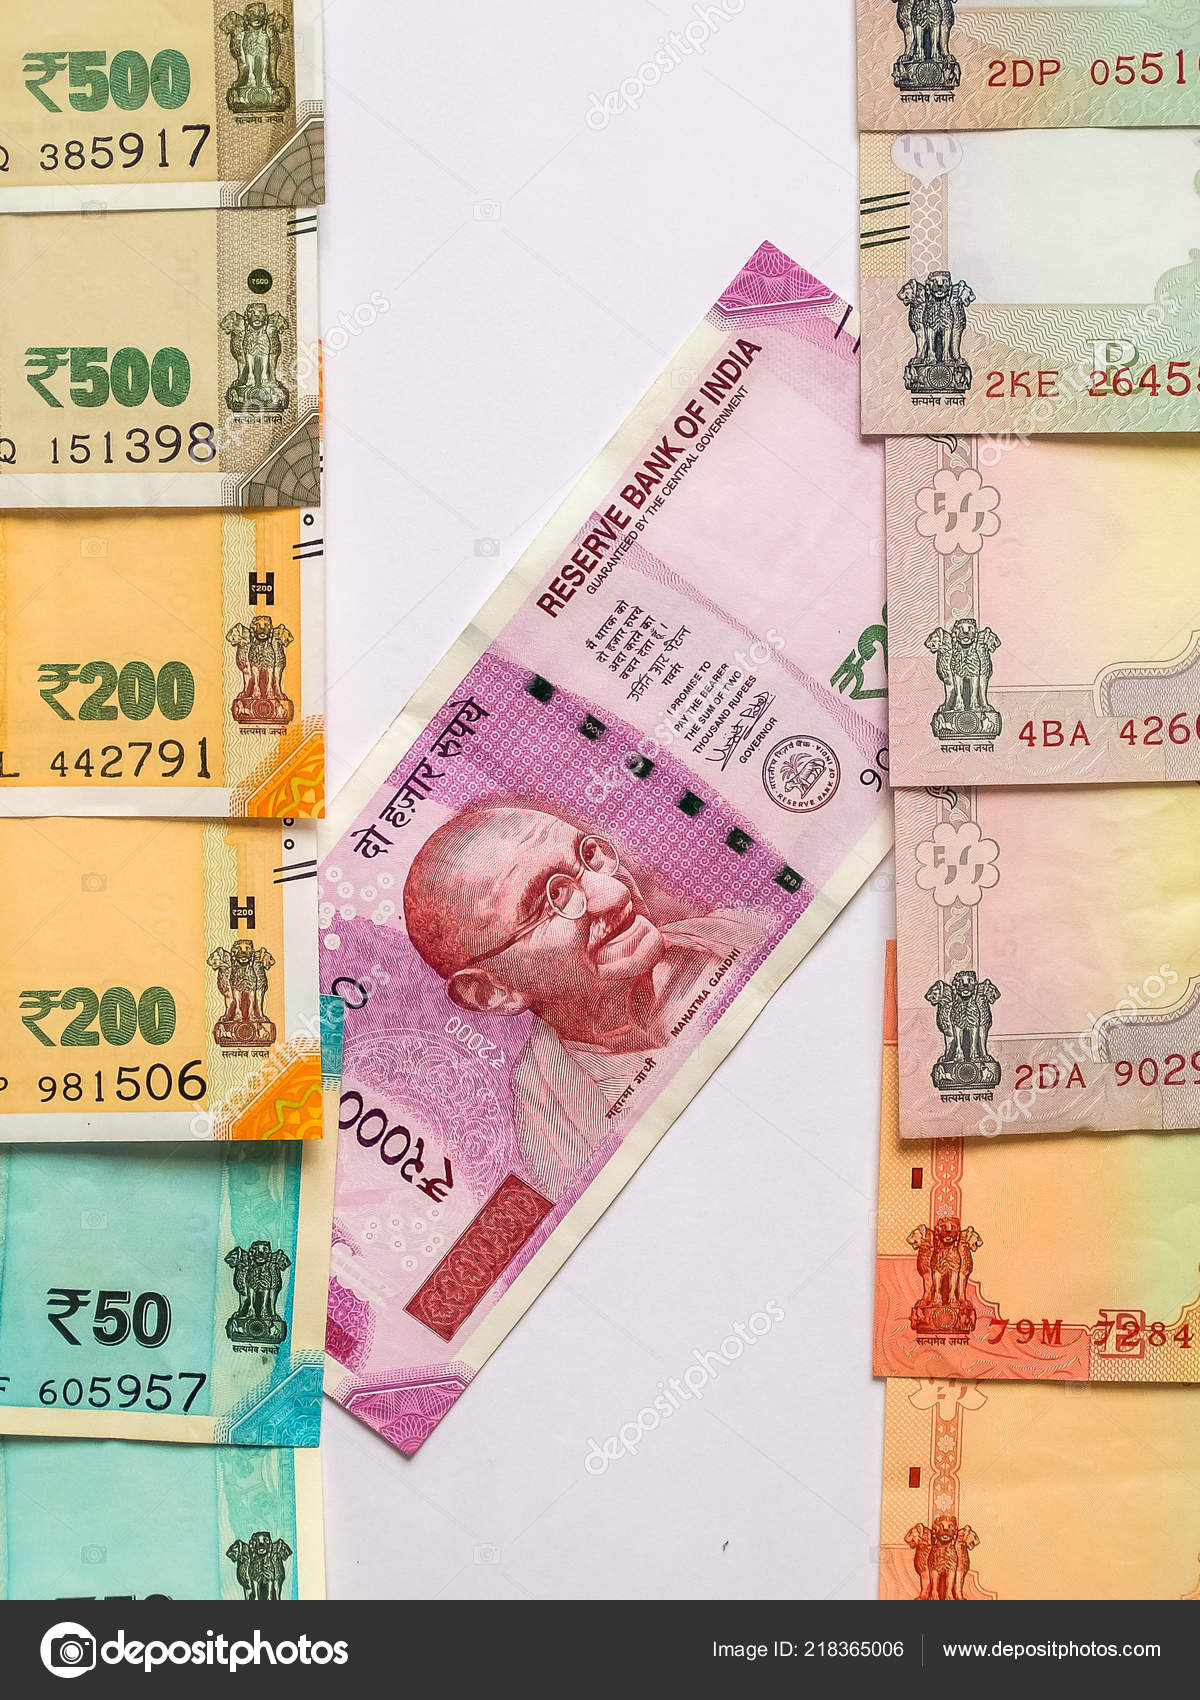 100 200 500 2000 Indian Rupees Old New Notes – Stock Editorial Photo